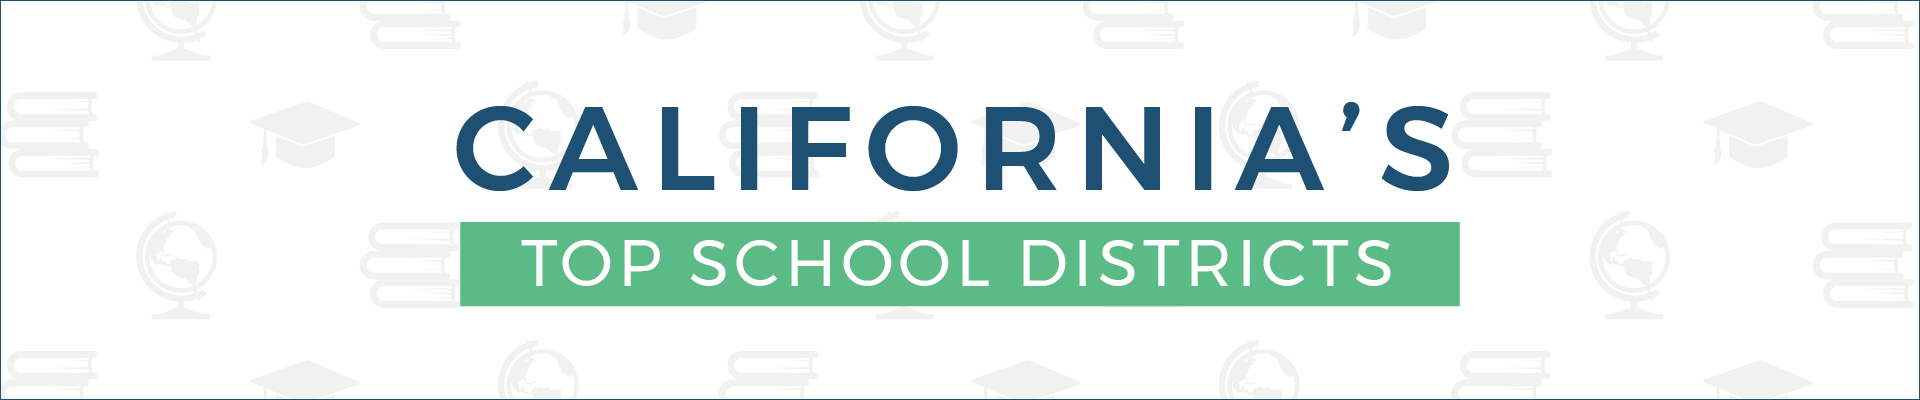 california_top_school_district_banner_2020